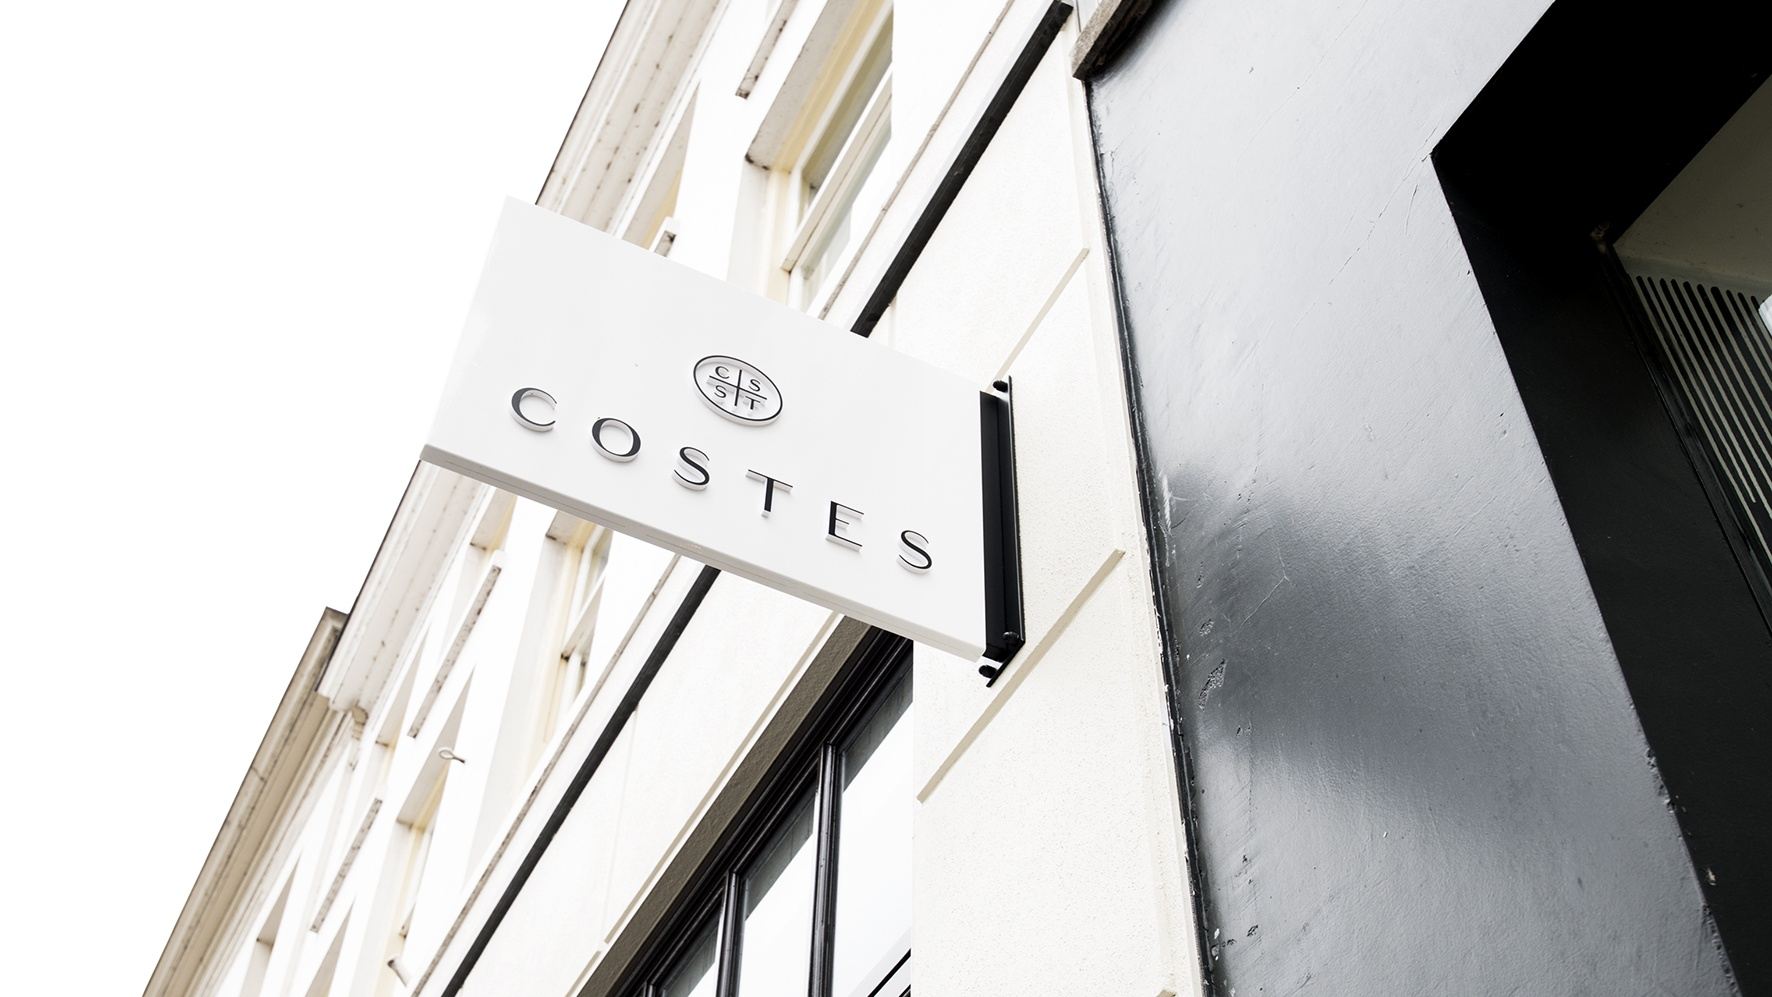 Costes breidt internationaal uit